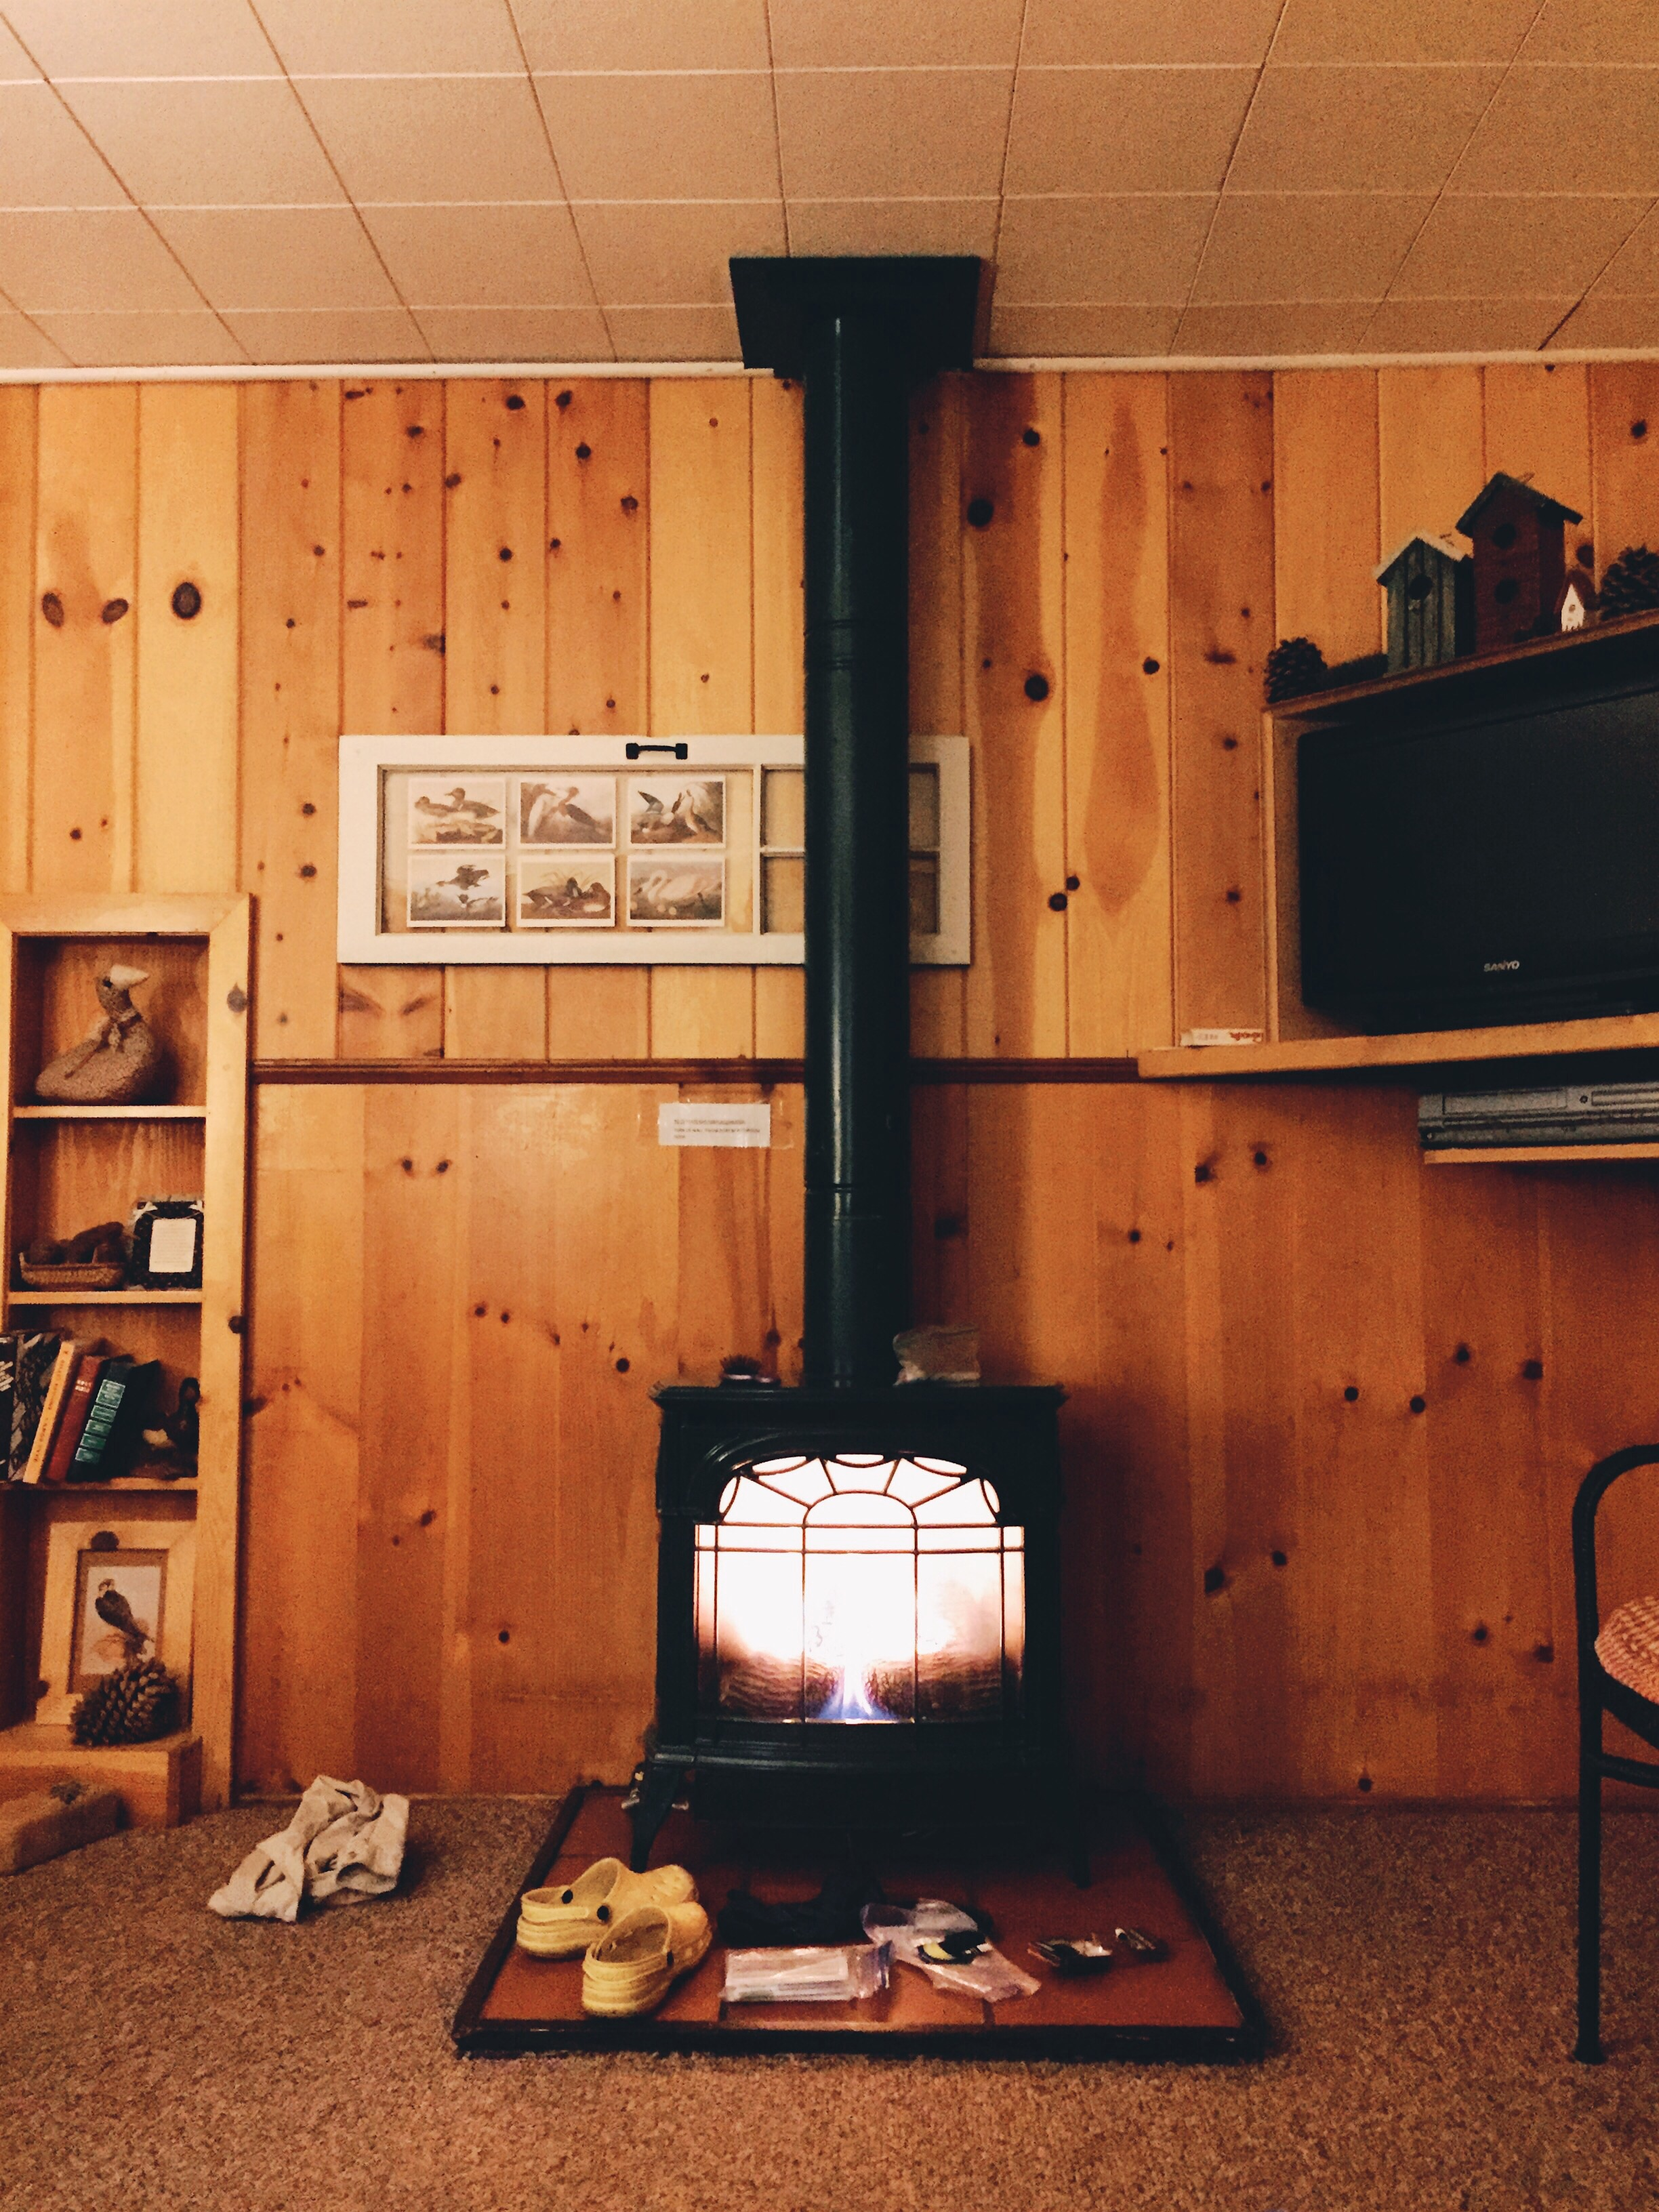 Our cute little cabin had this gas fireplace heater.